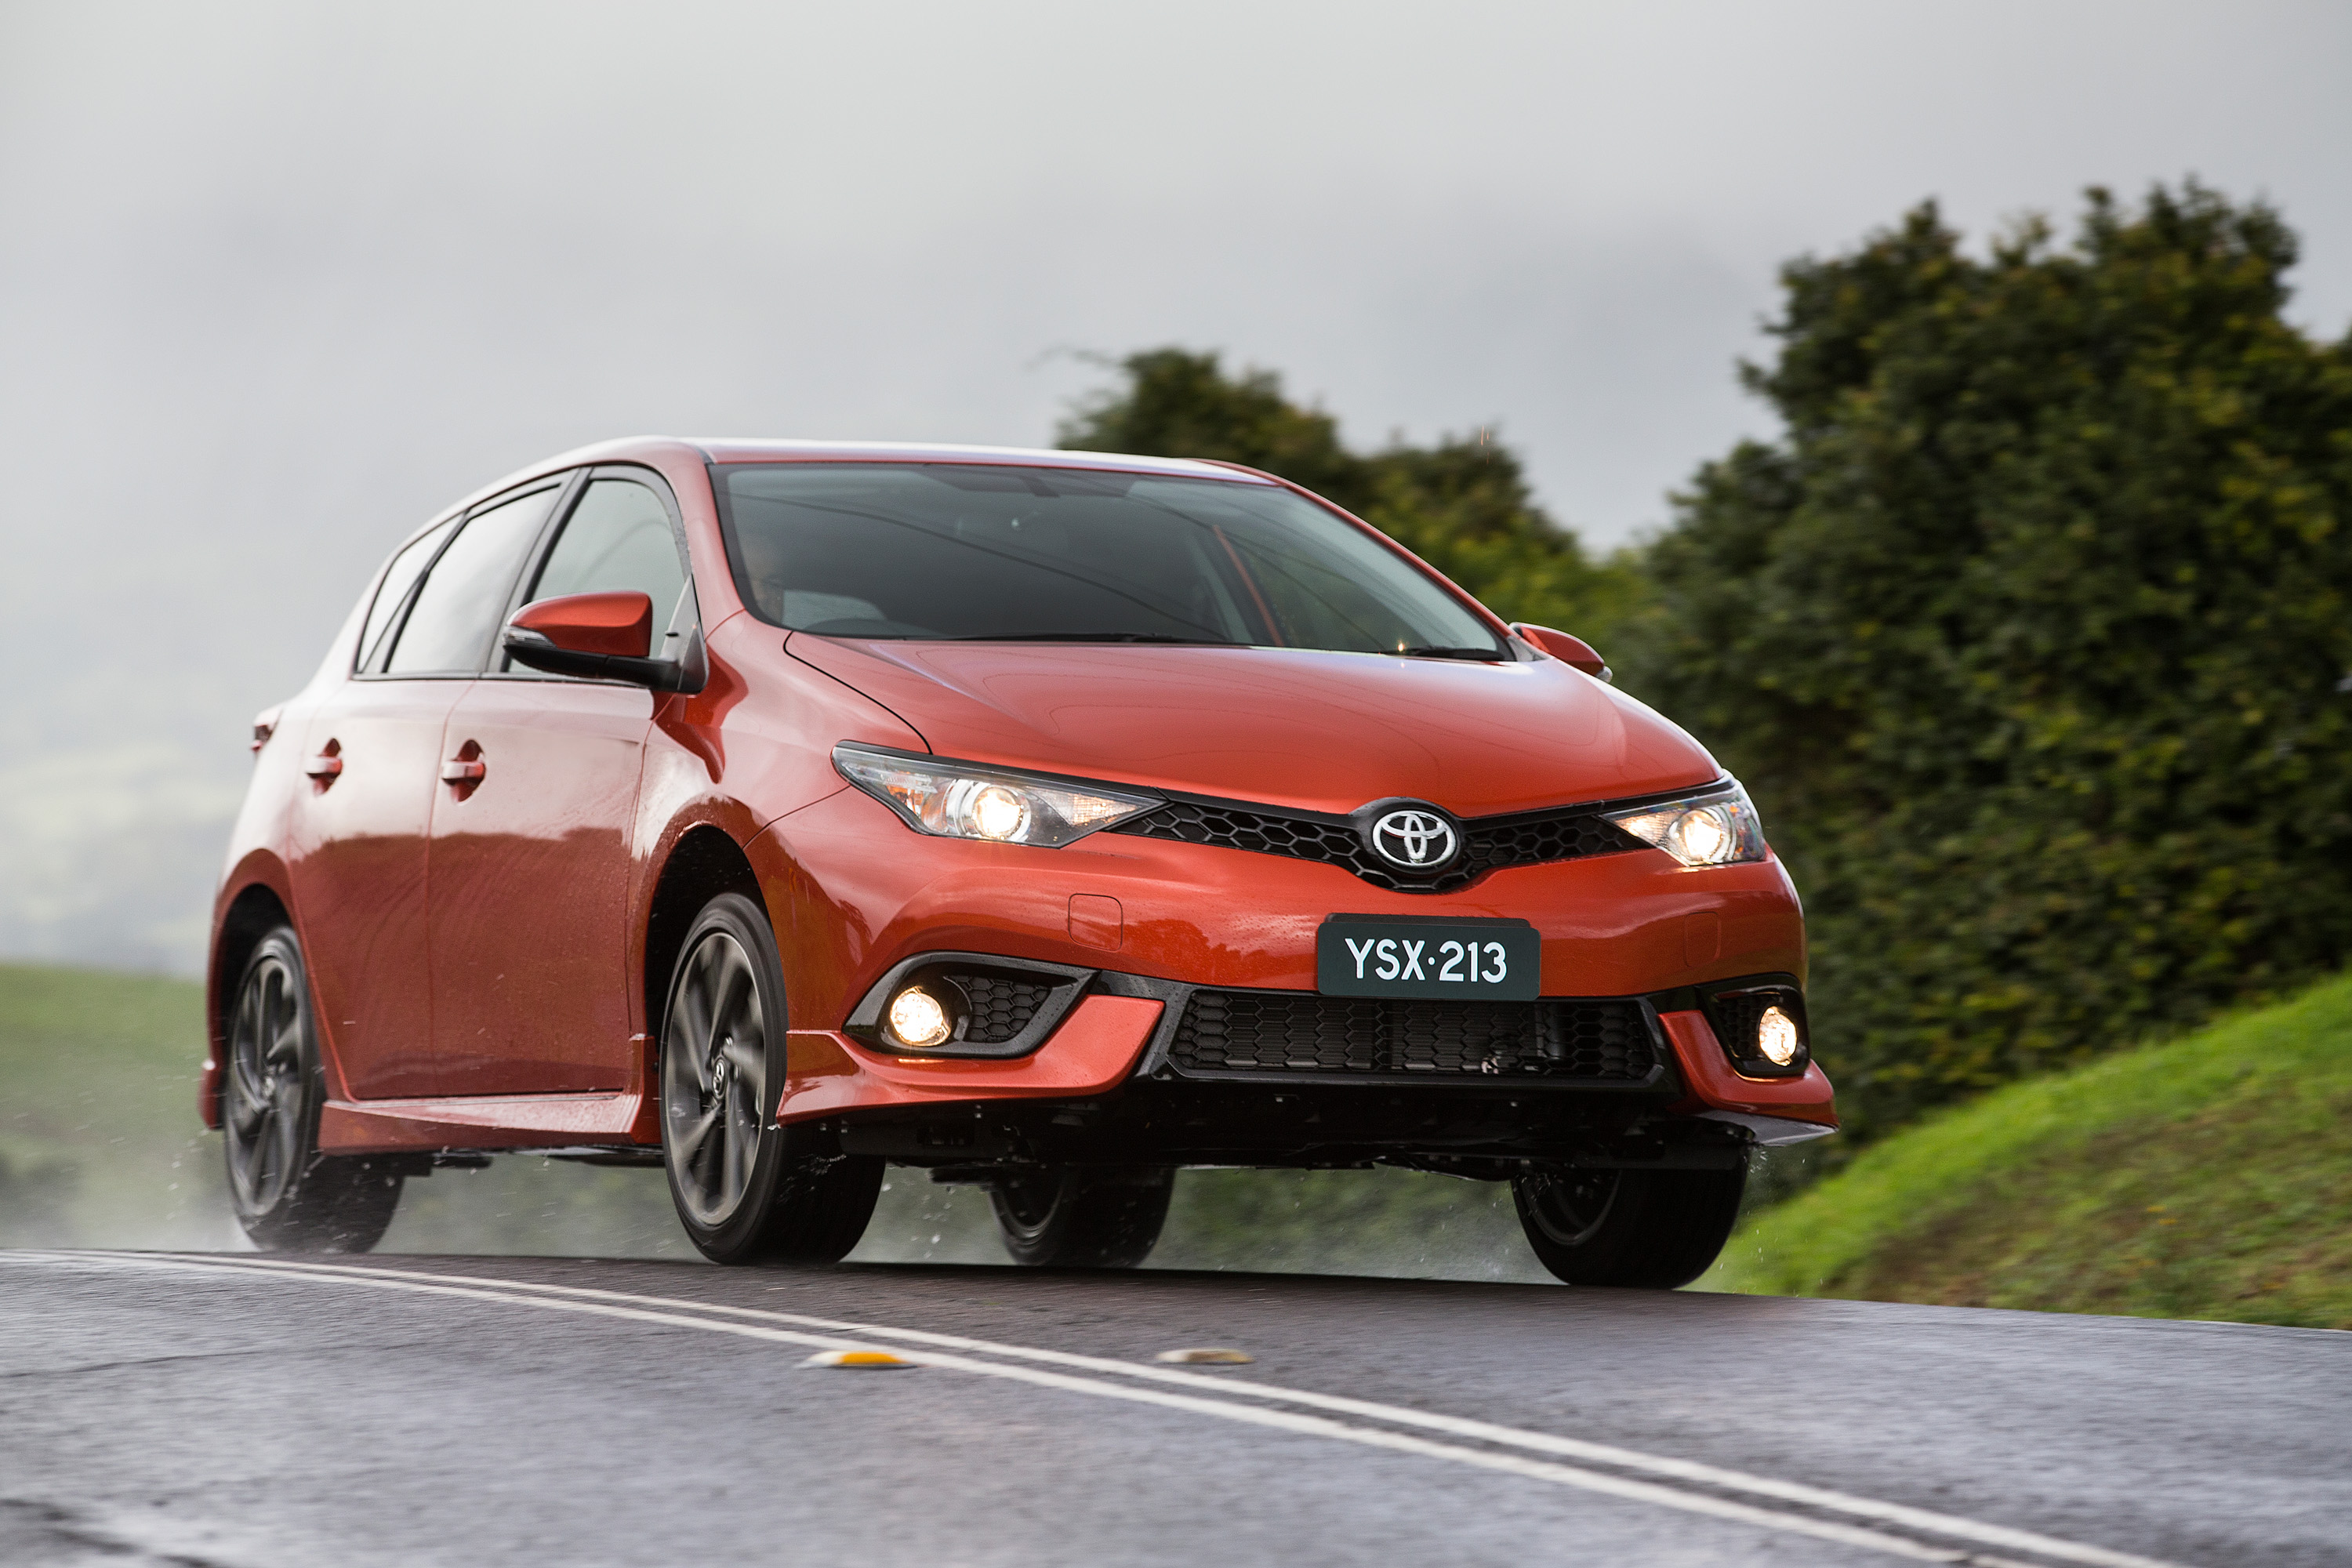 The Toyota Corolla was the highest selling passenger vehicle in 2017.